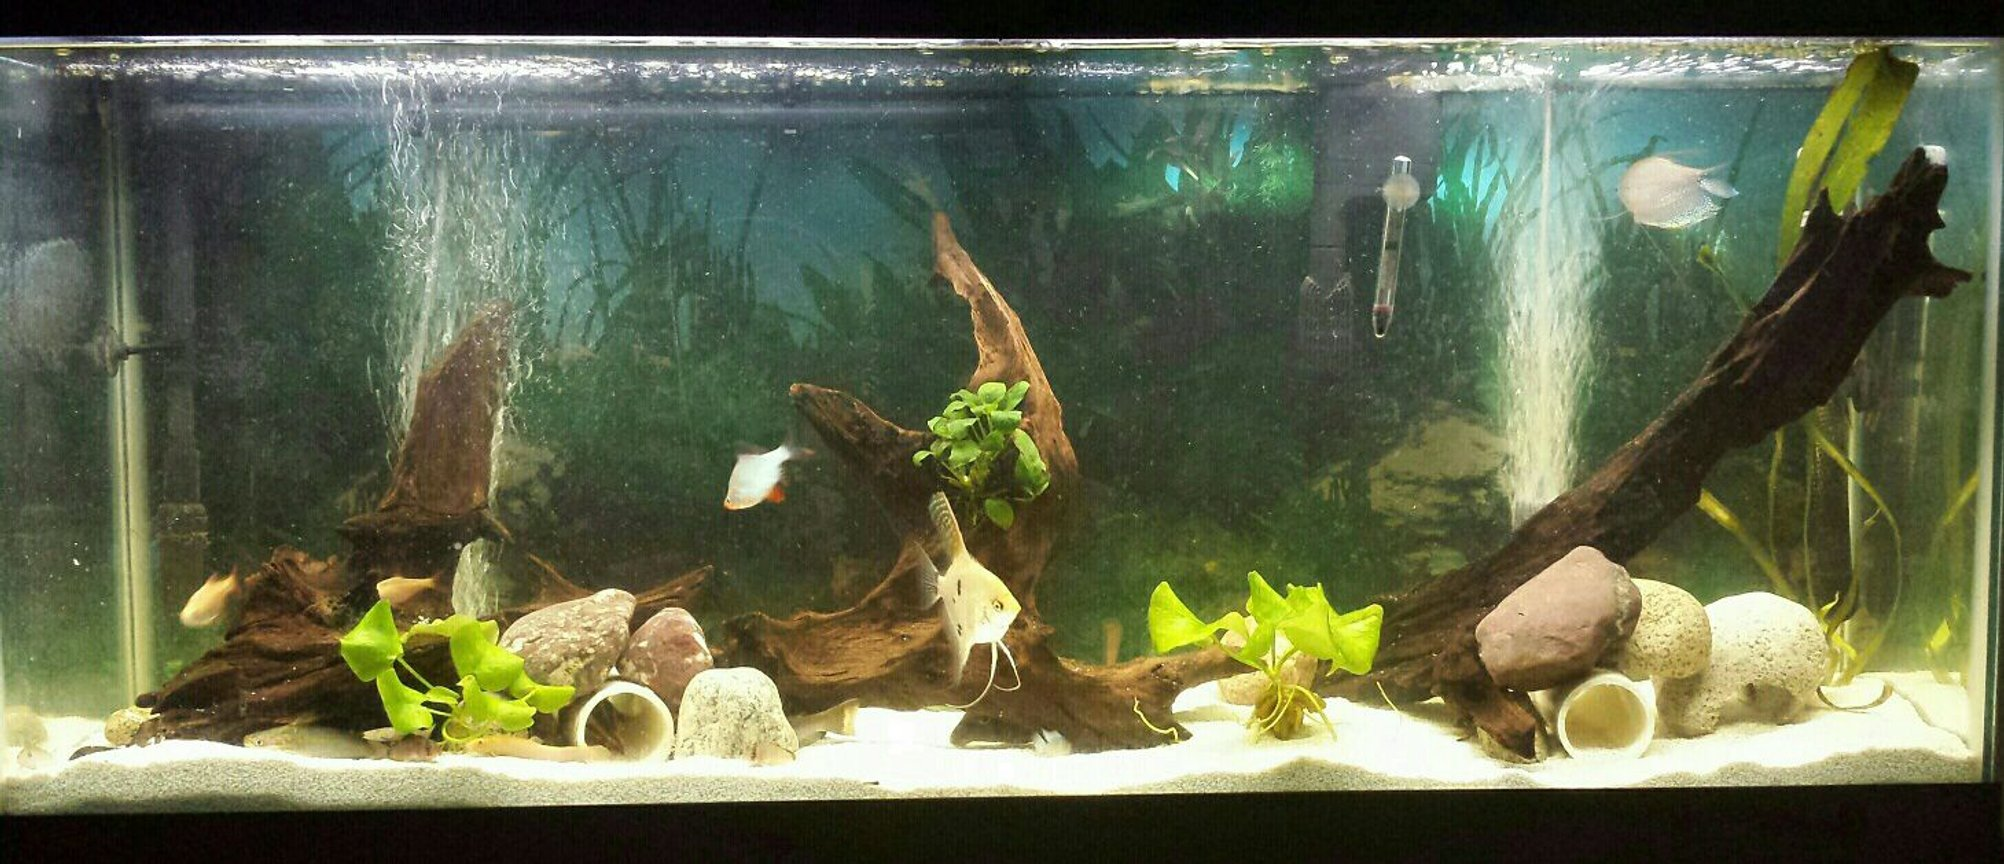 55 gallons freshwater fish tank (mostly fish and non-living decorations) - Update on the tank. constantly trying to make a better place for my fish.